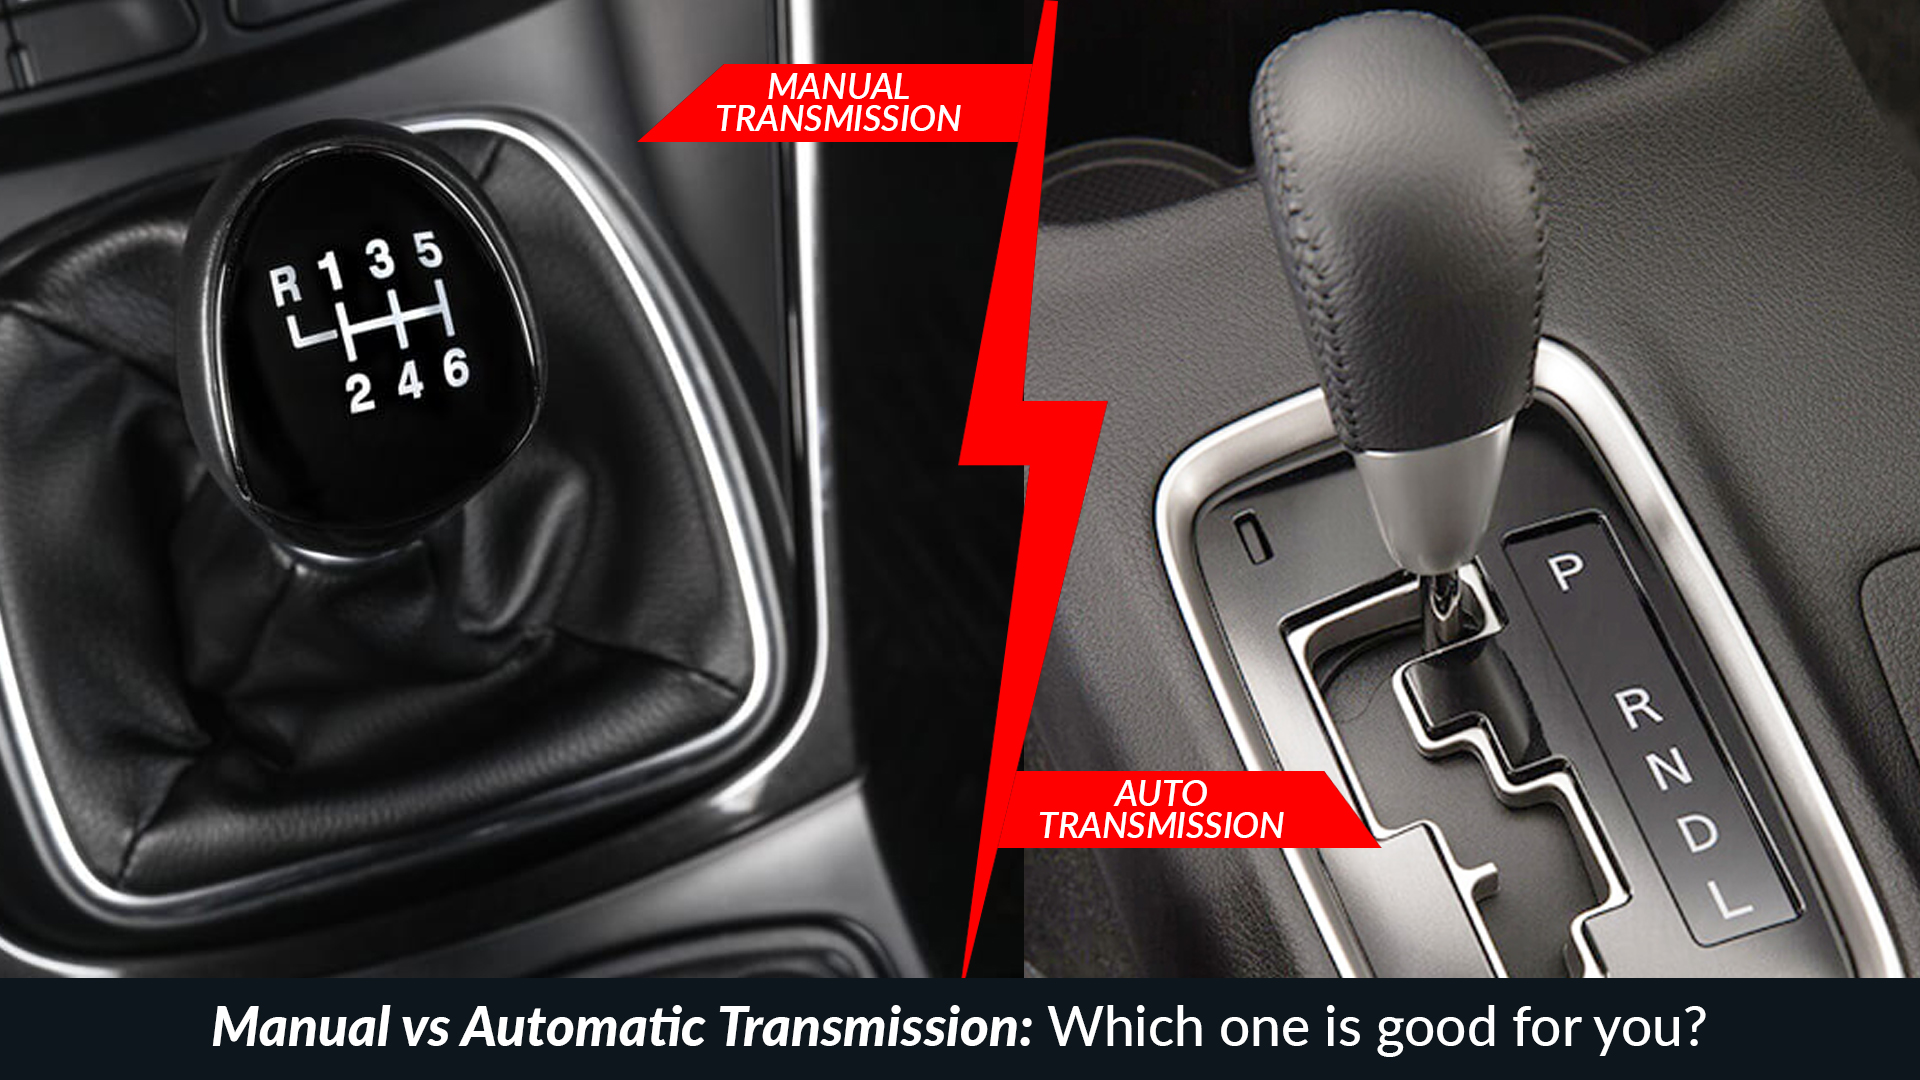 Manual Vs Automatic Transmission Which One Is Good For You And Why